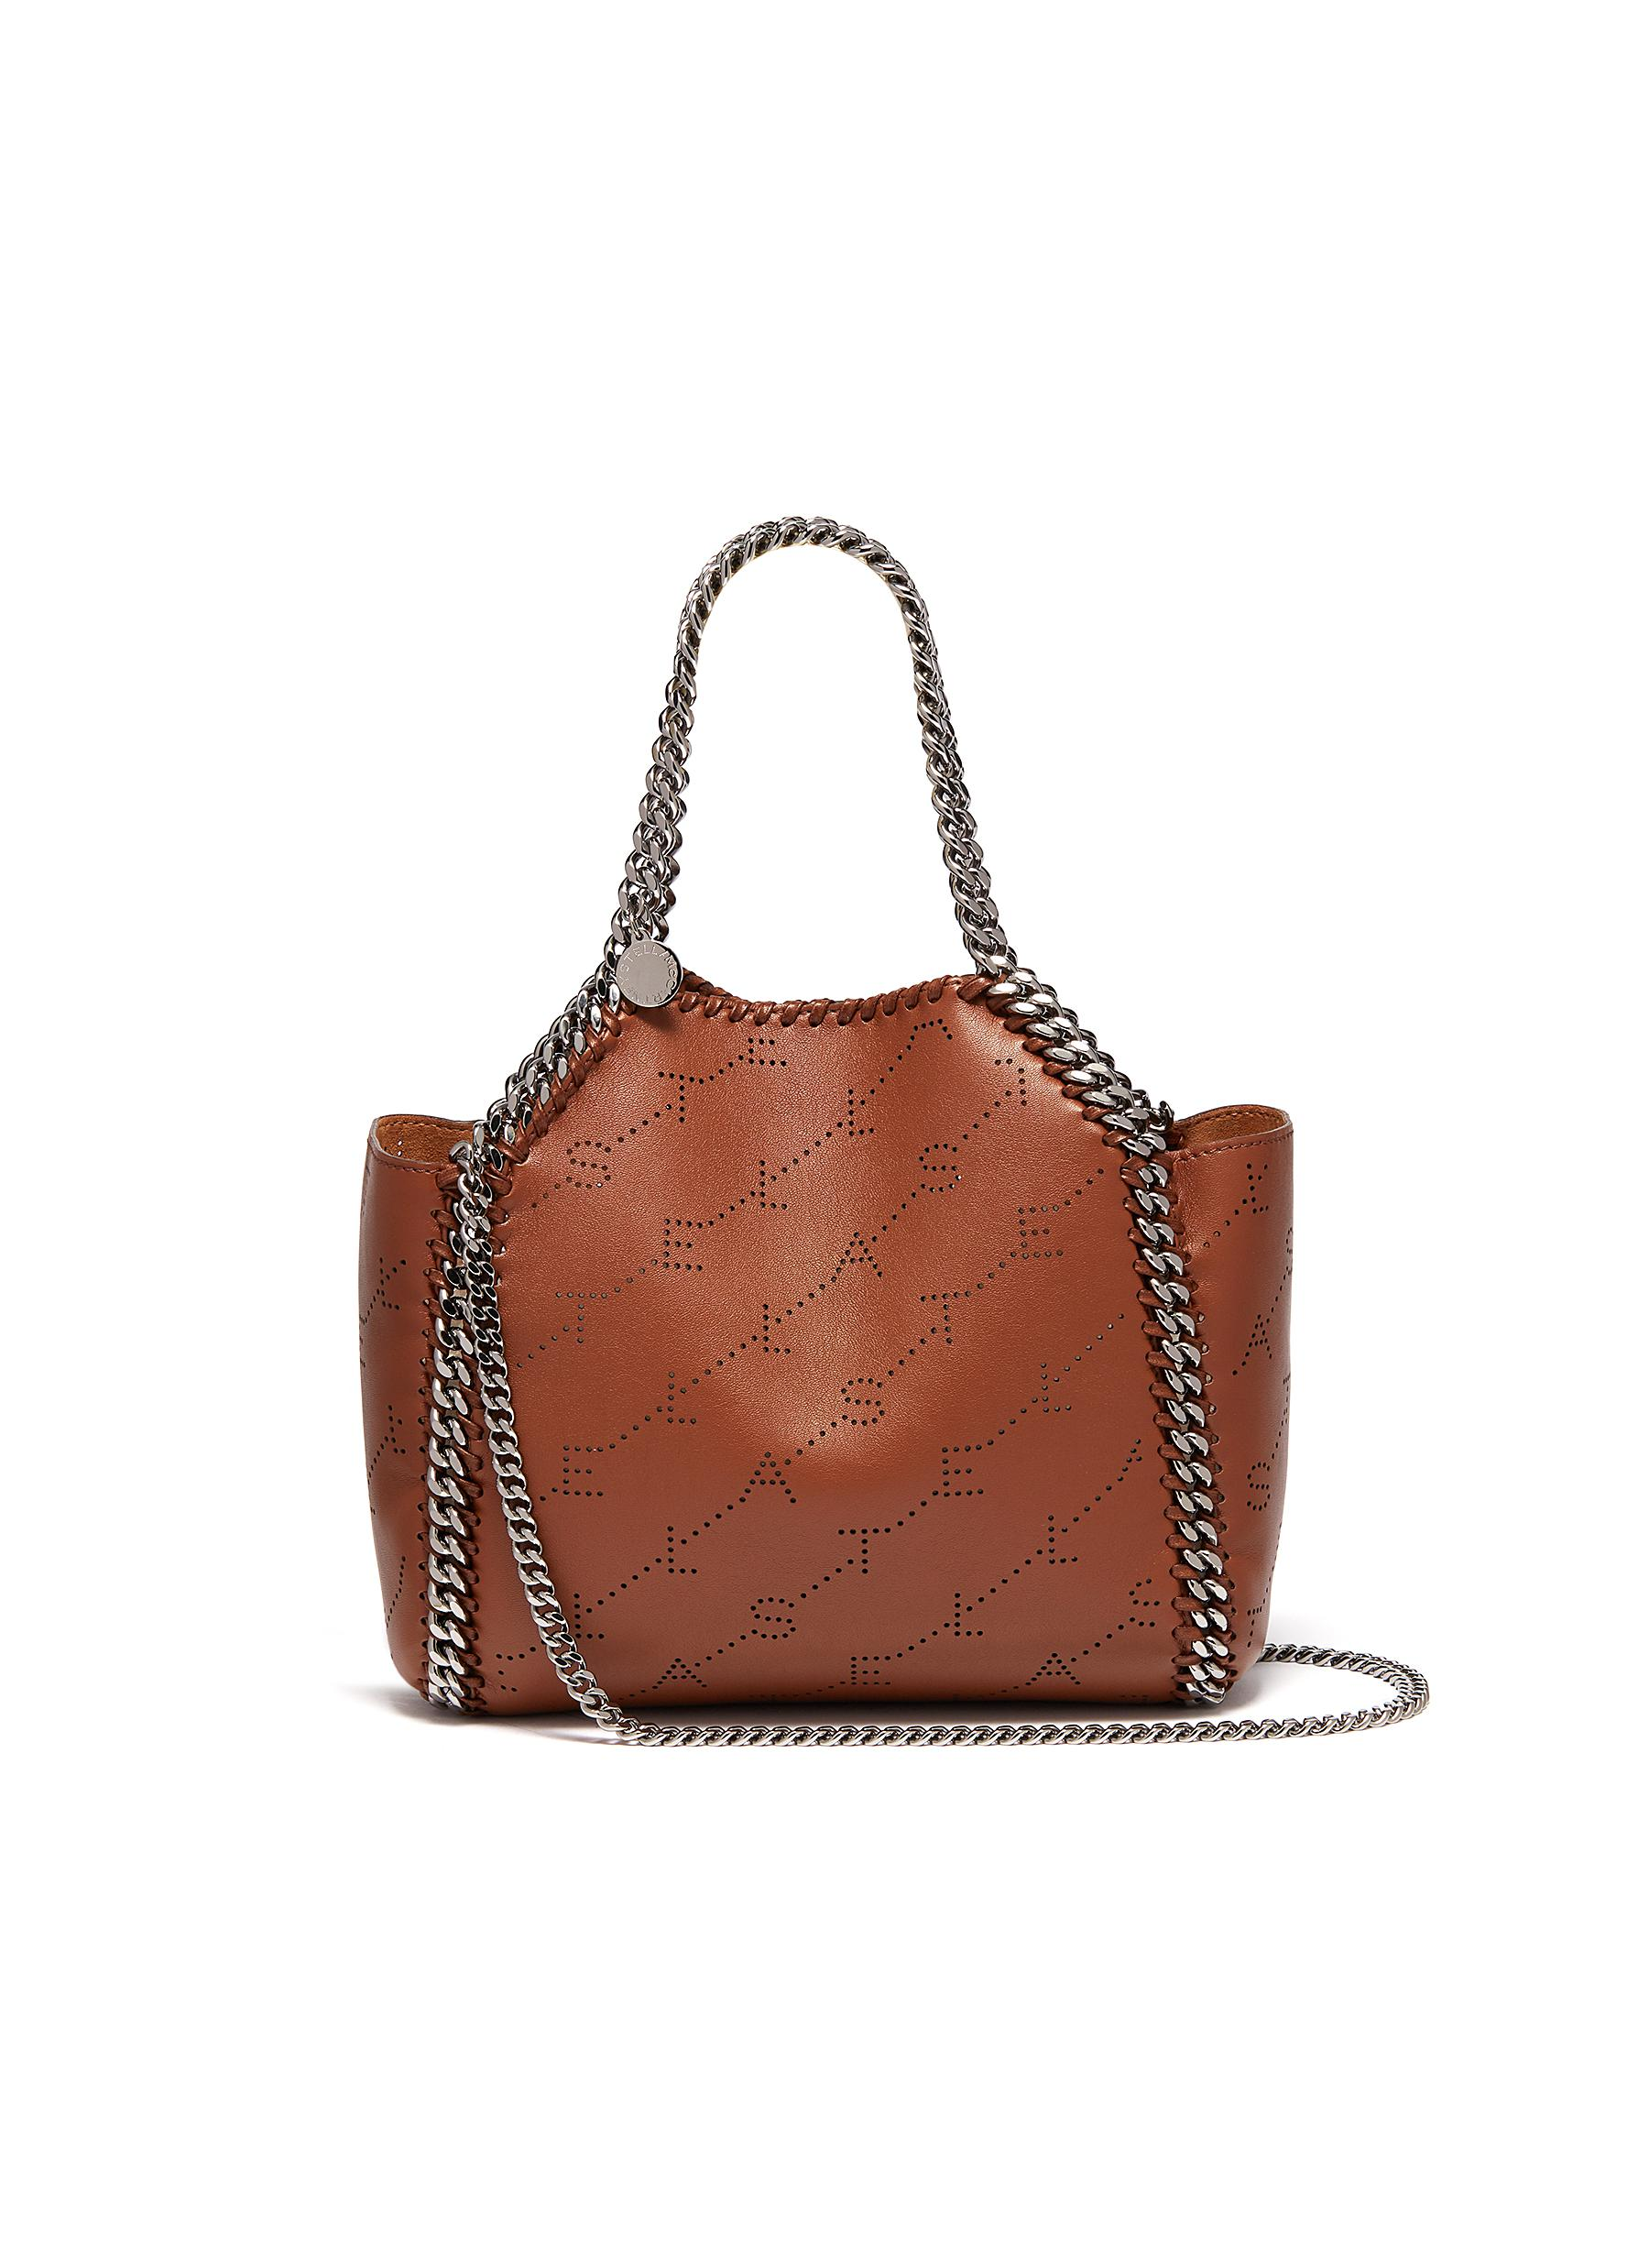 fb83930cba9a Main View - Click To Enlarge - Stella McCartney -  Falabella  reversible  perforated logo